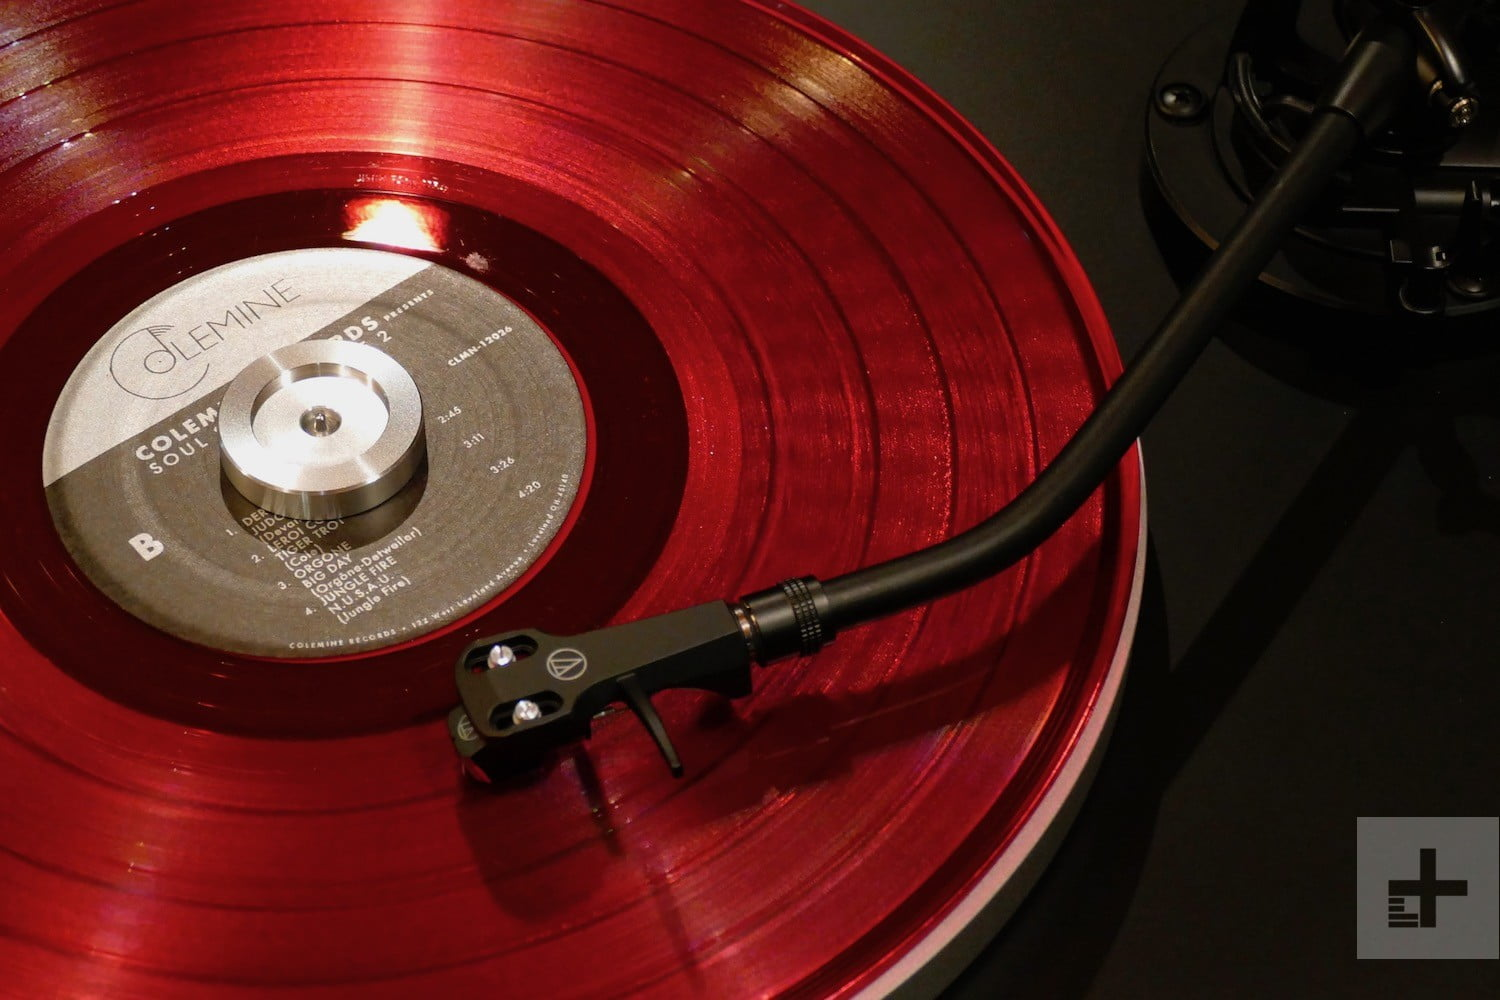 Audio-Technica makes heads spin with new turntable, and bass-heavy earbuds